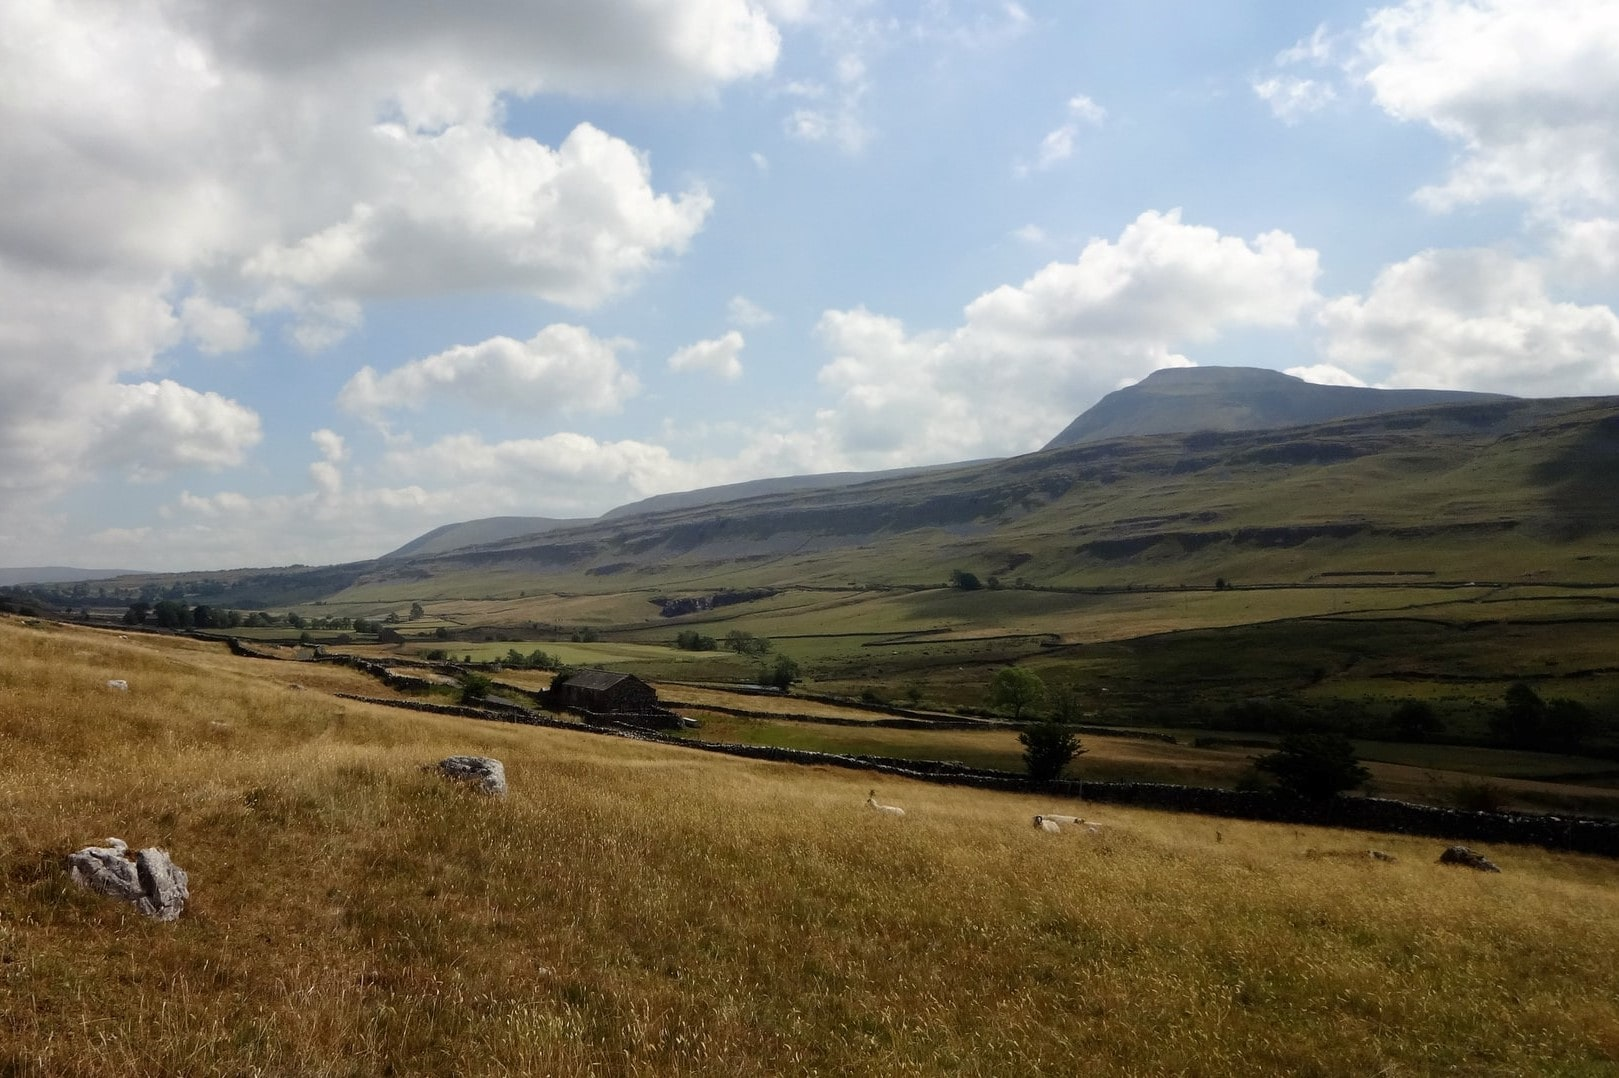 views-aross-fields-and-a-mountain-yorkshire-three-peaks-ingleborough